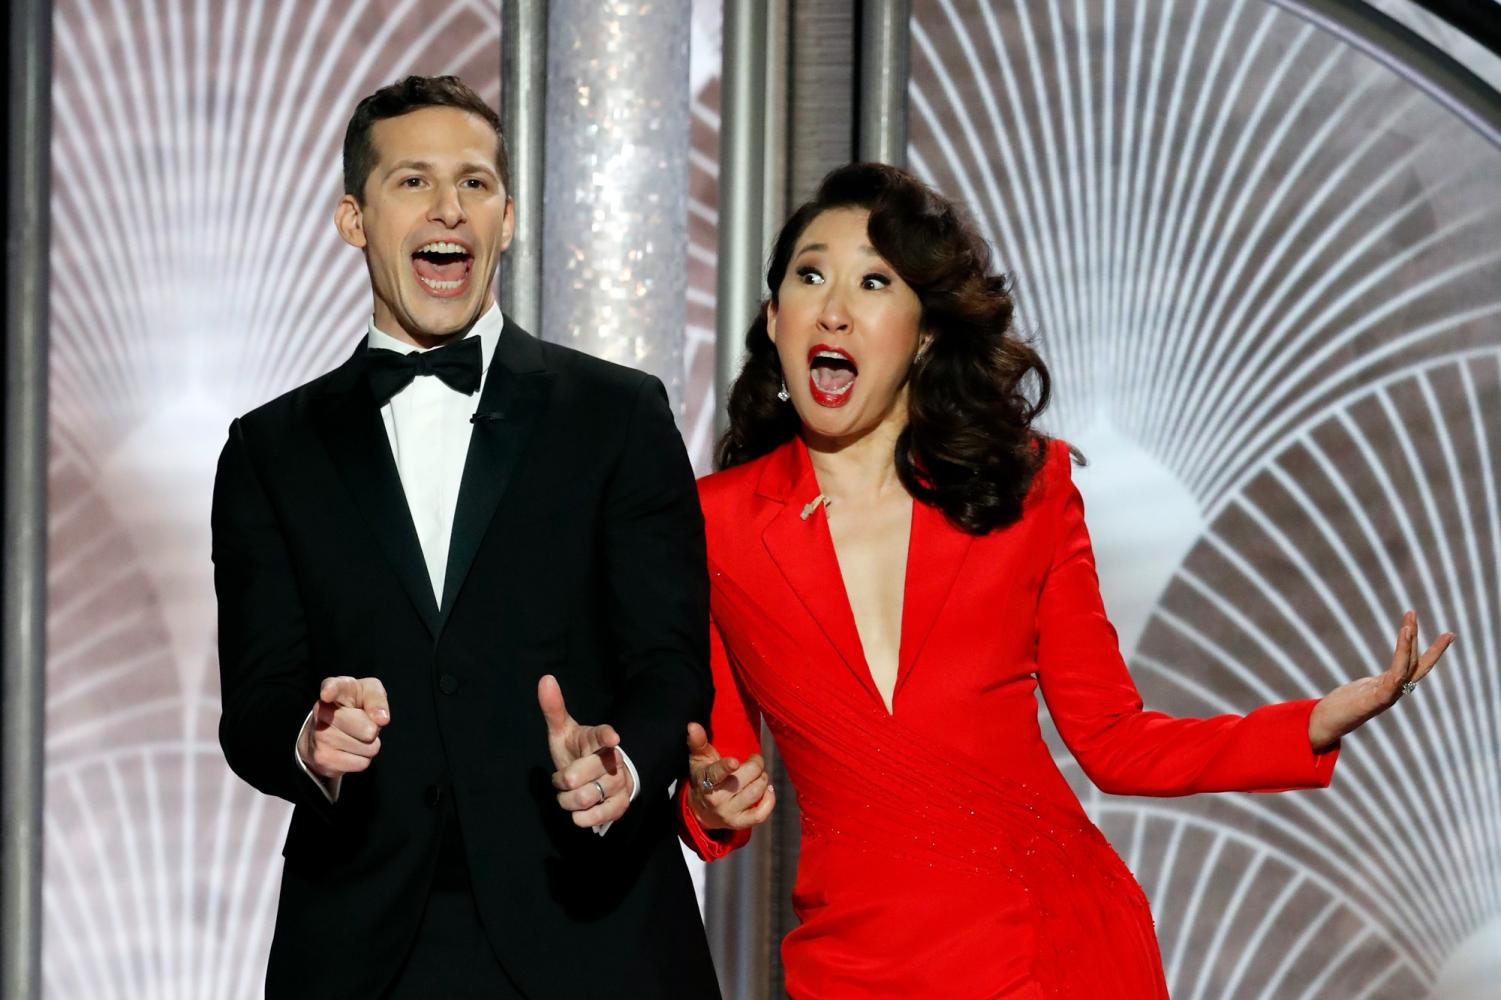 Sandra Oh and Andy Samberg having fun on stage at the 76th annual Golden Globes.